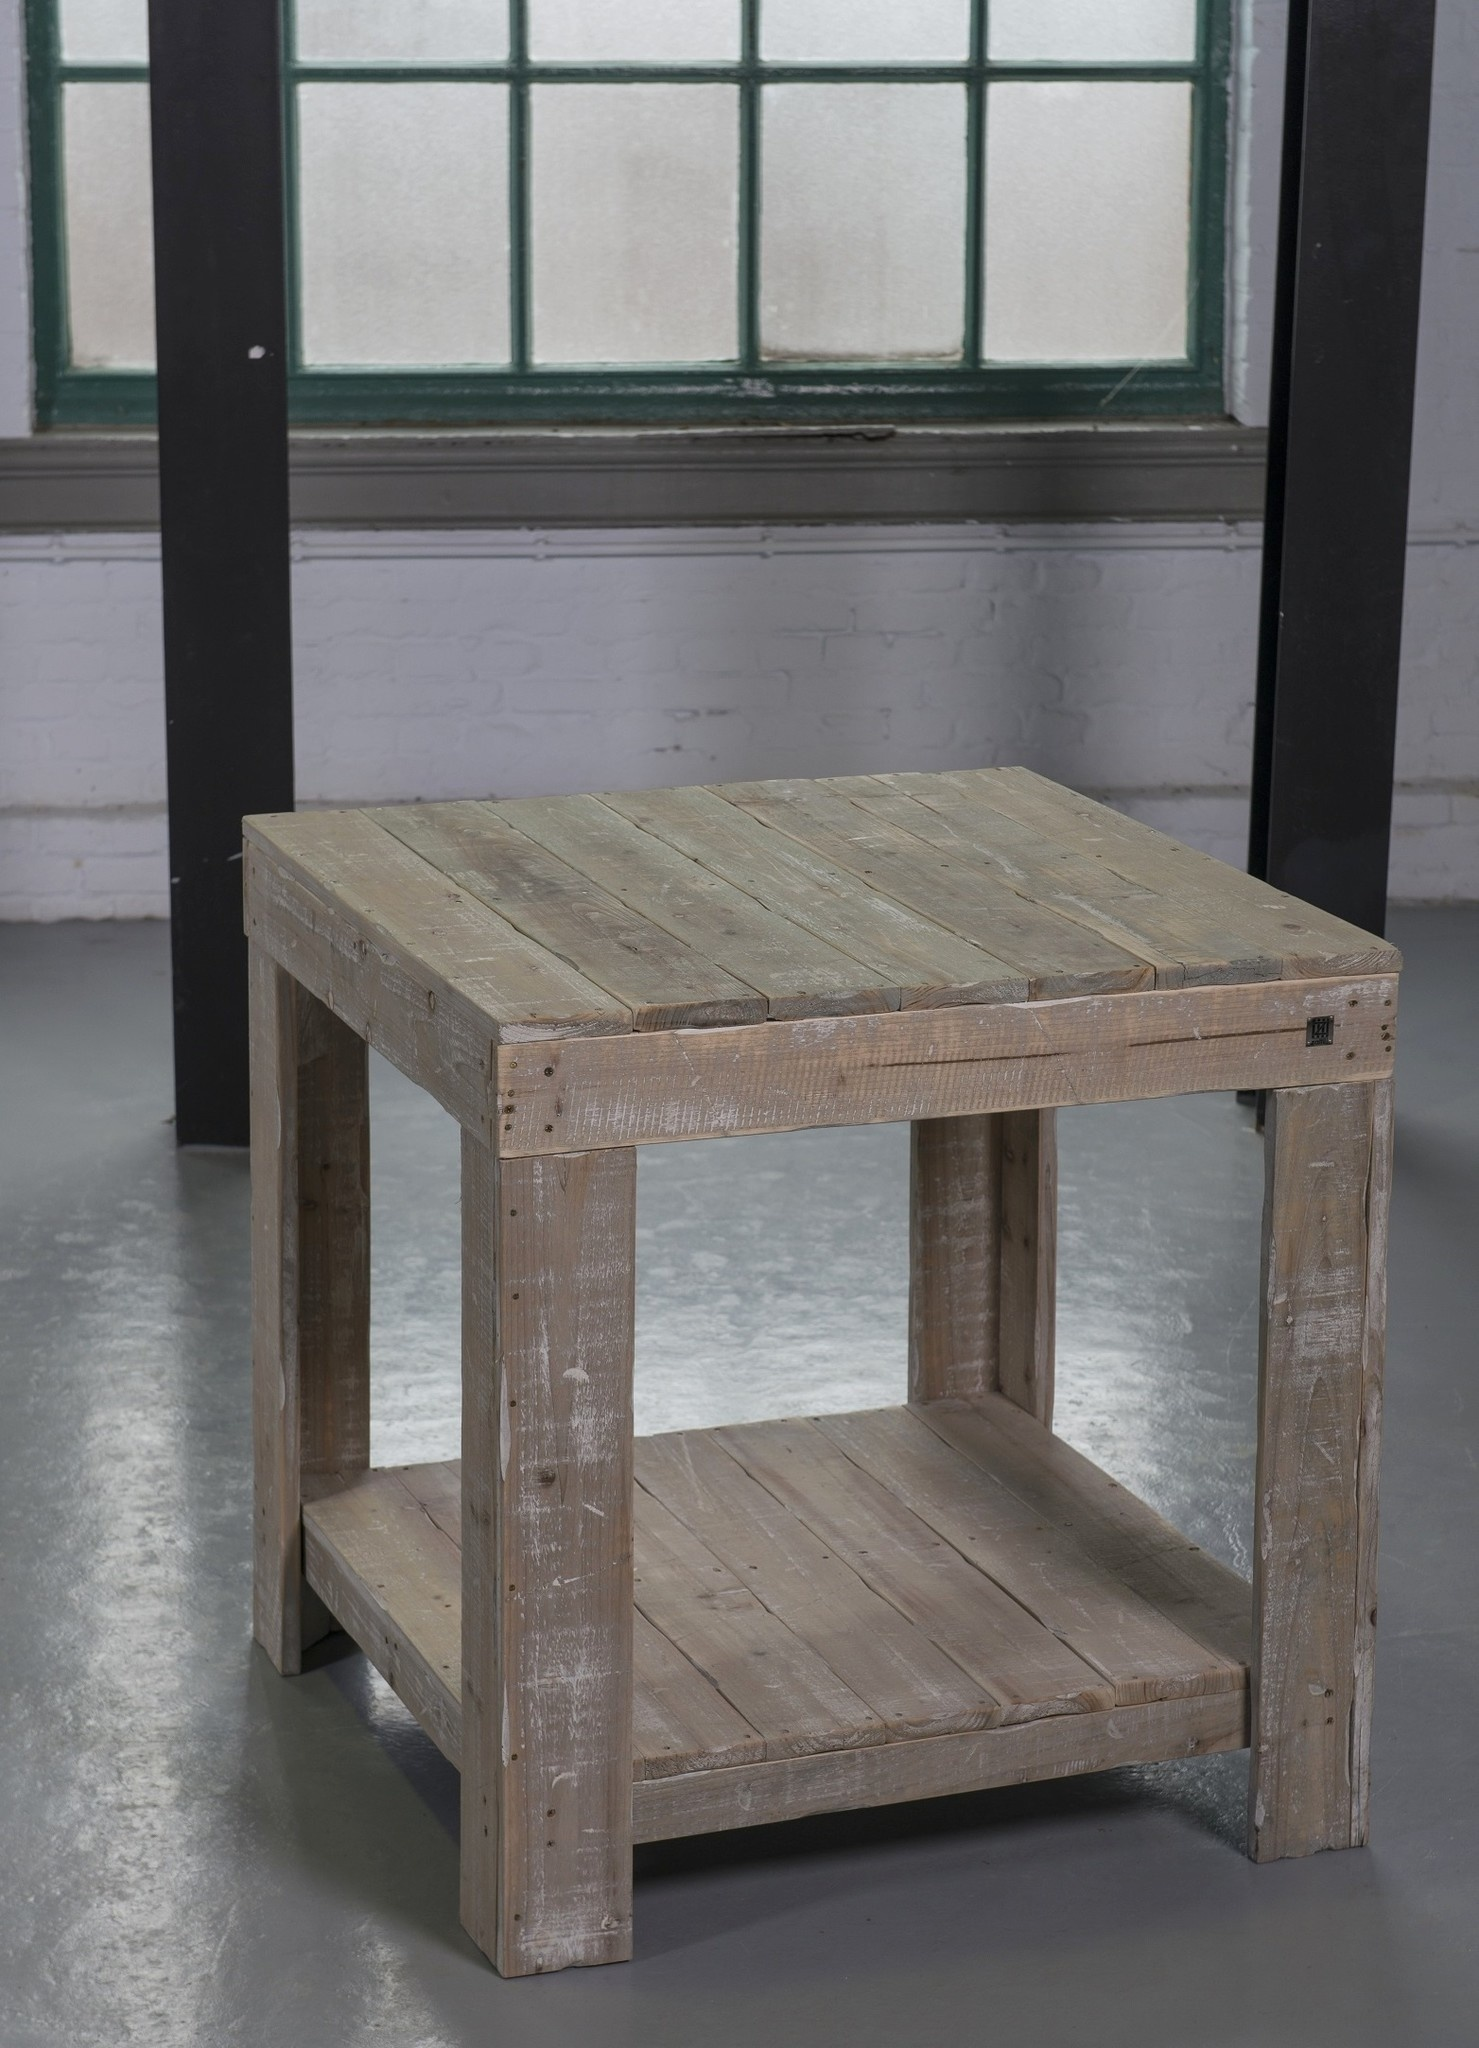 shop int old dutch table double 78-6